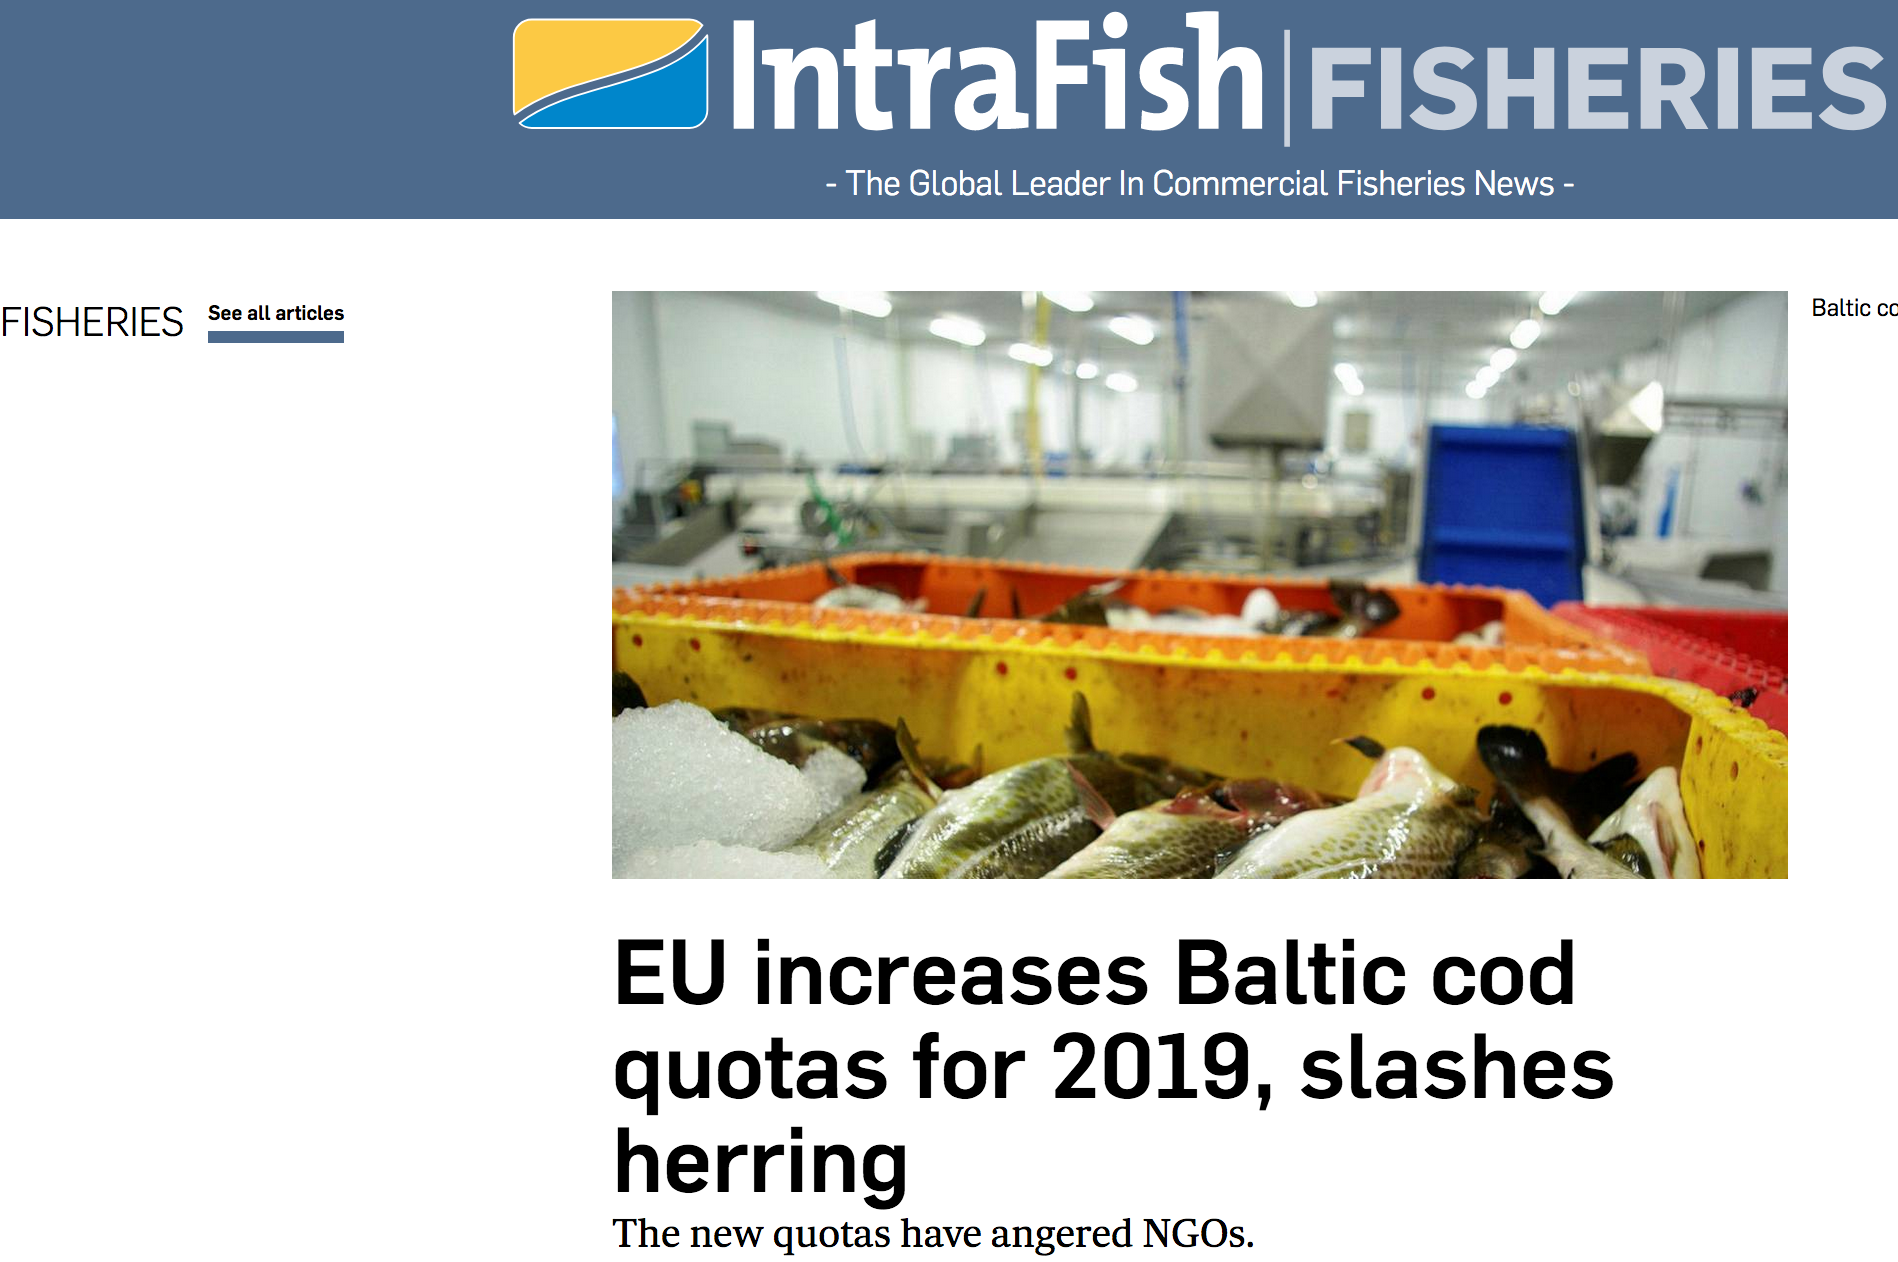 EU increases Baltic cod quotas for 2019, slashes herring